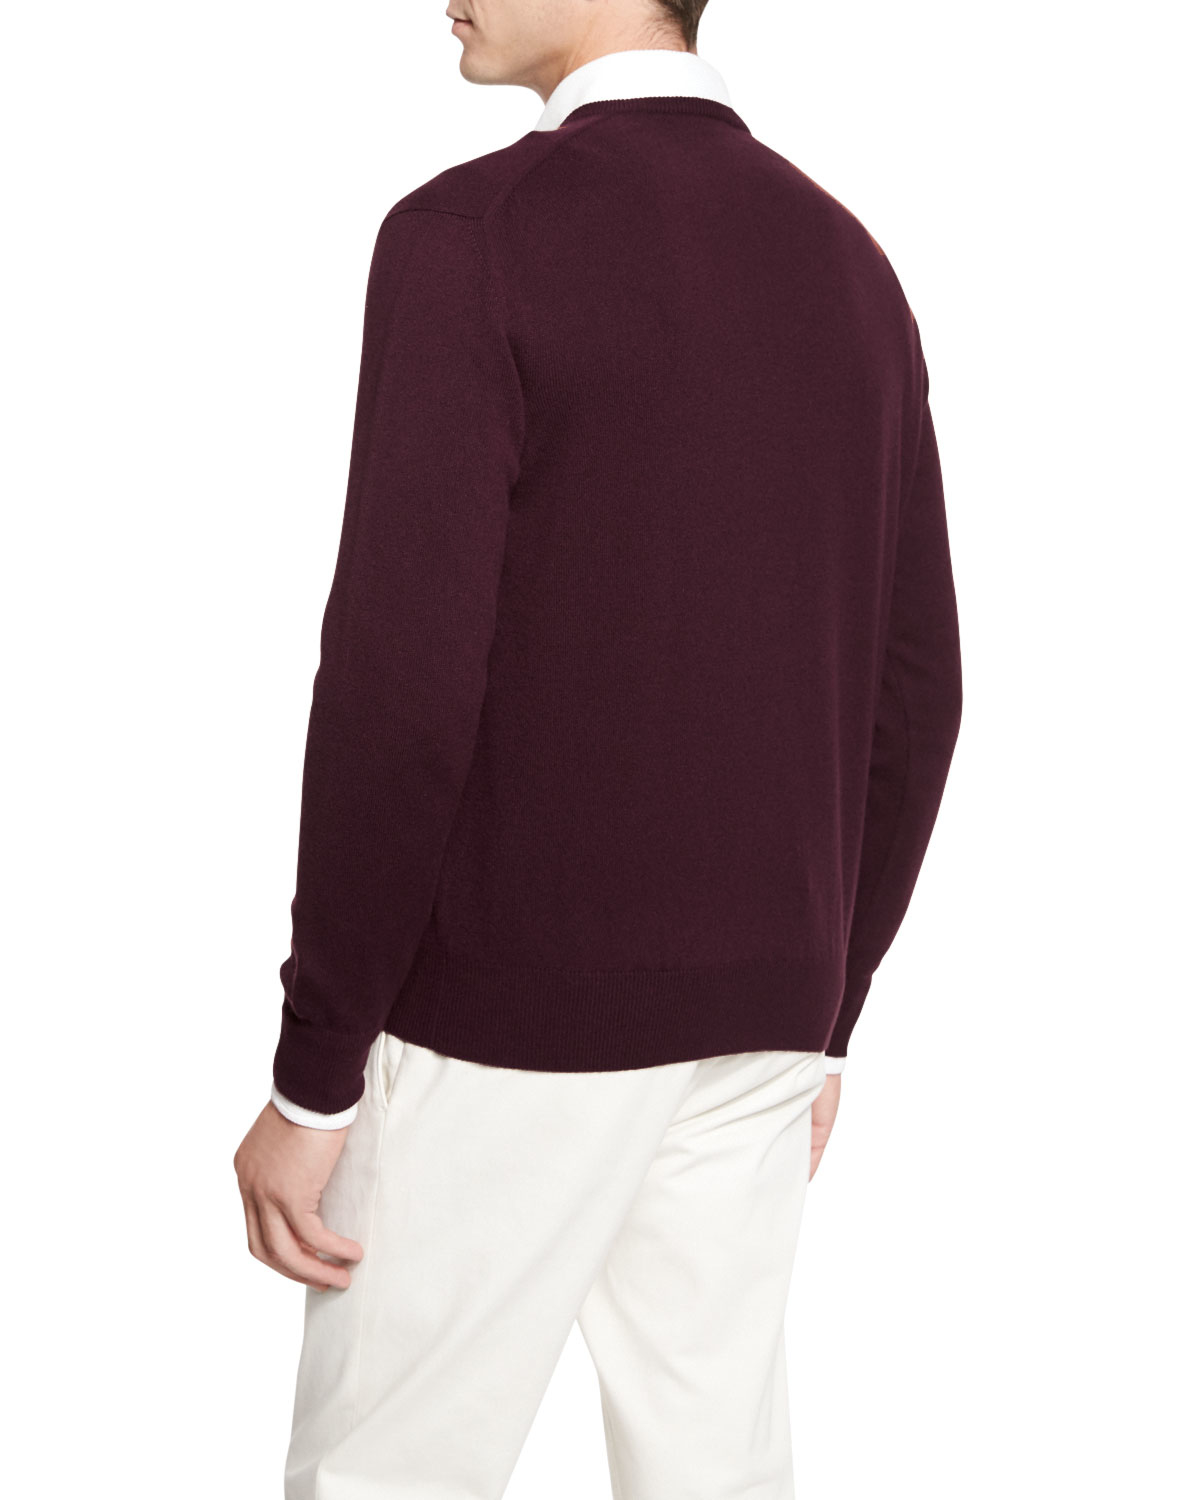 d5bb56aa4d93 Lyst - Loro Piana Baby Cashmere V-neck Sweater in Purple for Men